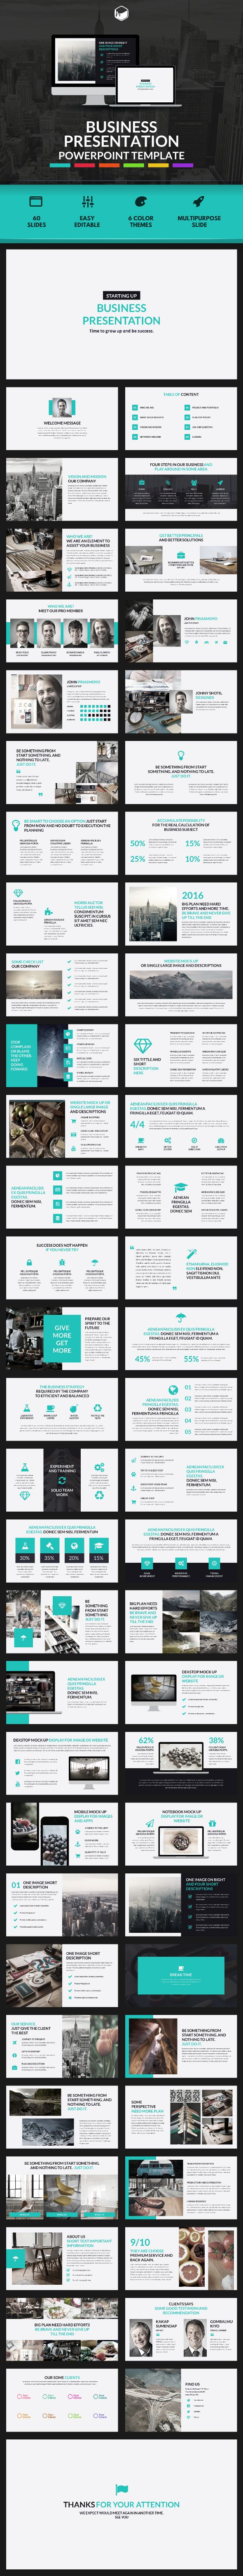 Business Presentation - PowerPoint Template - Business PowerPoint Templates Download here: https://graphicriver.net/item/business-presentation-powerpoint-template/18273188?ref=classicdesignp